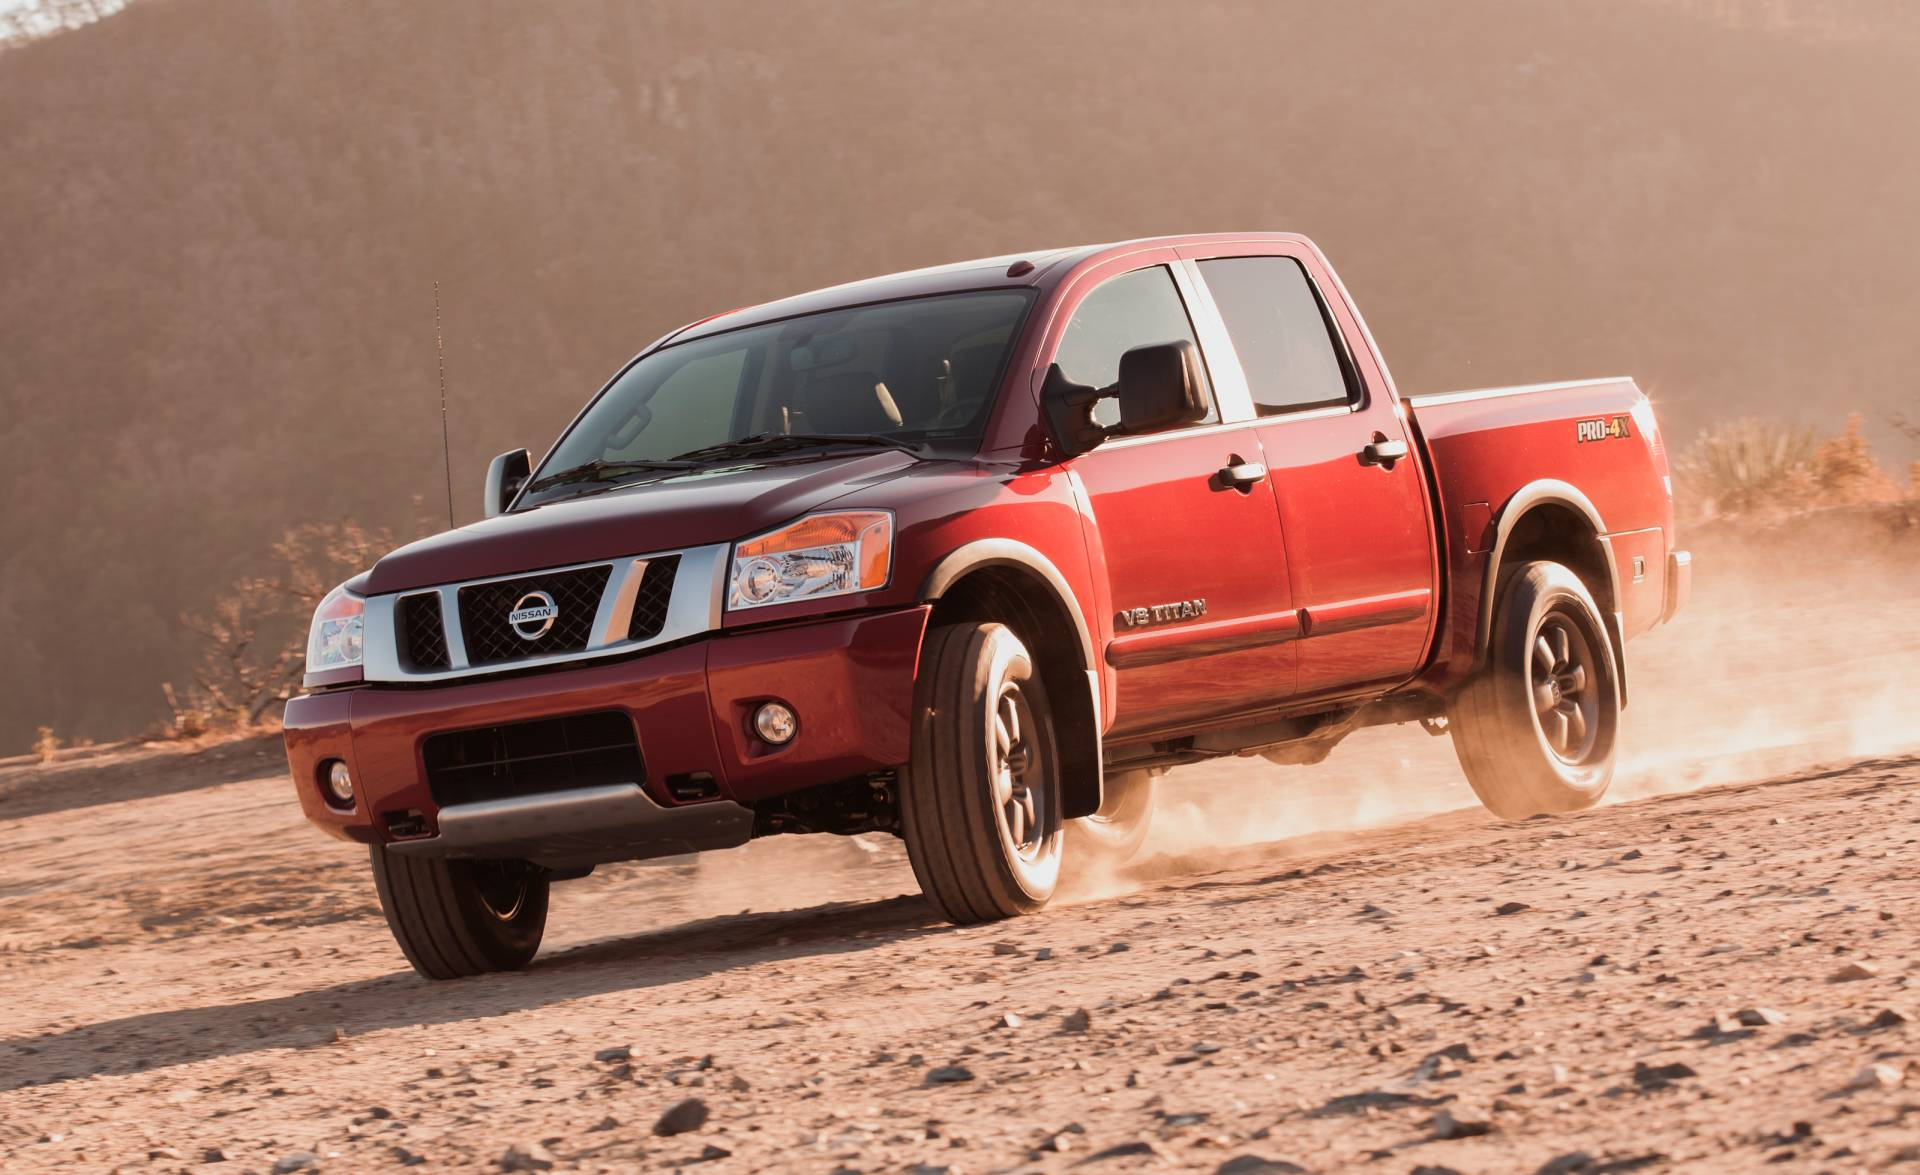 Nissan Titan Wallpapers Top Free Nissan Titan Backgrounds Wallpaperaccess